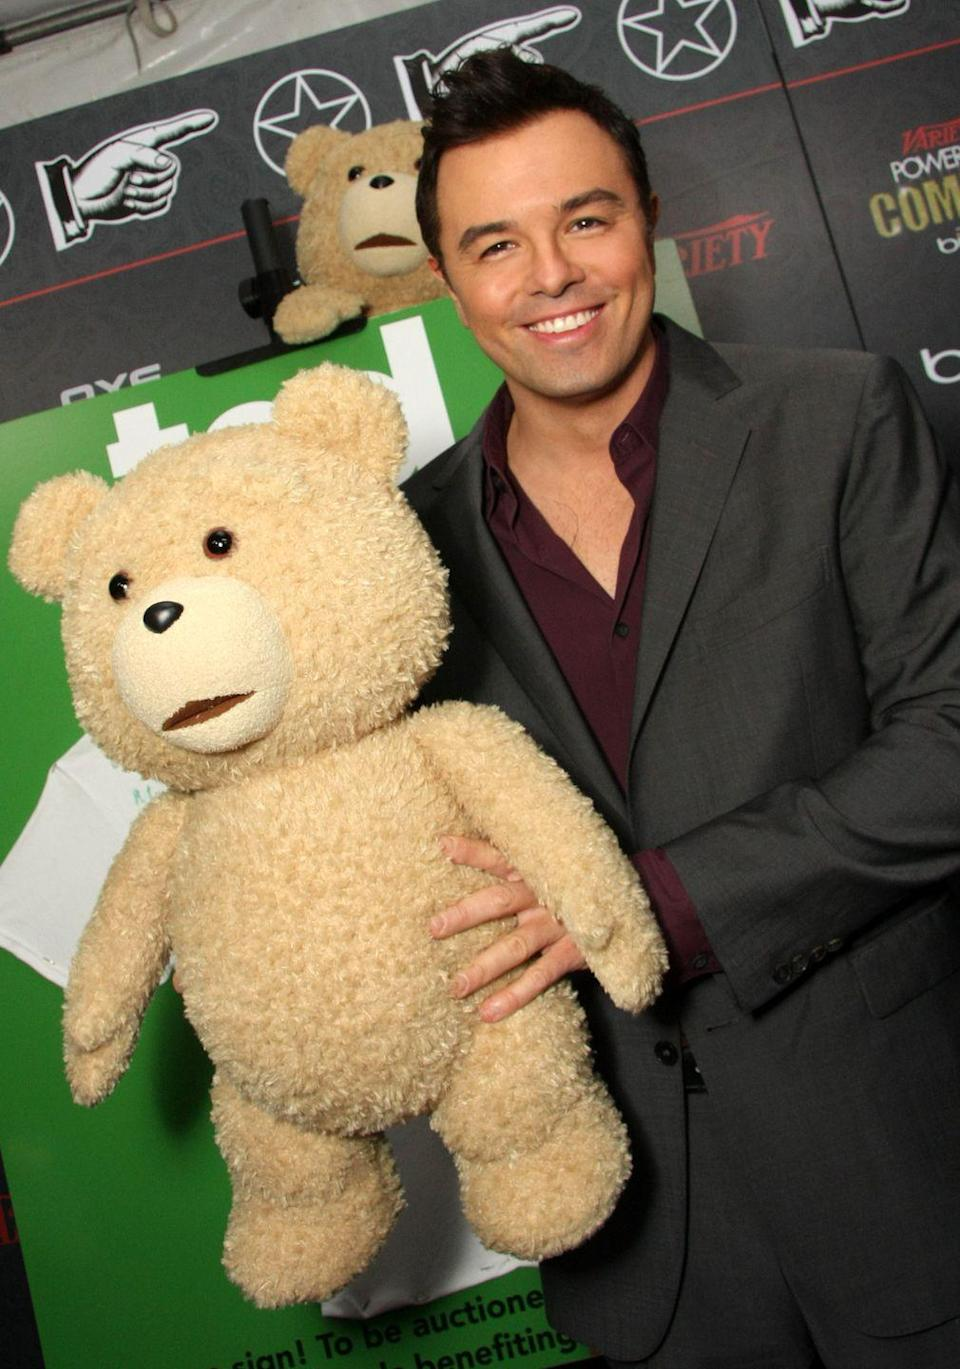 <p>After writing, animating, producing, and voicing the characters on <em>Family Guy</em>, Seth MacFarlane transitioned to film. He made his directorial debut with <em>Ted</em> in 2016, in which he also voiced the main character.</p>